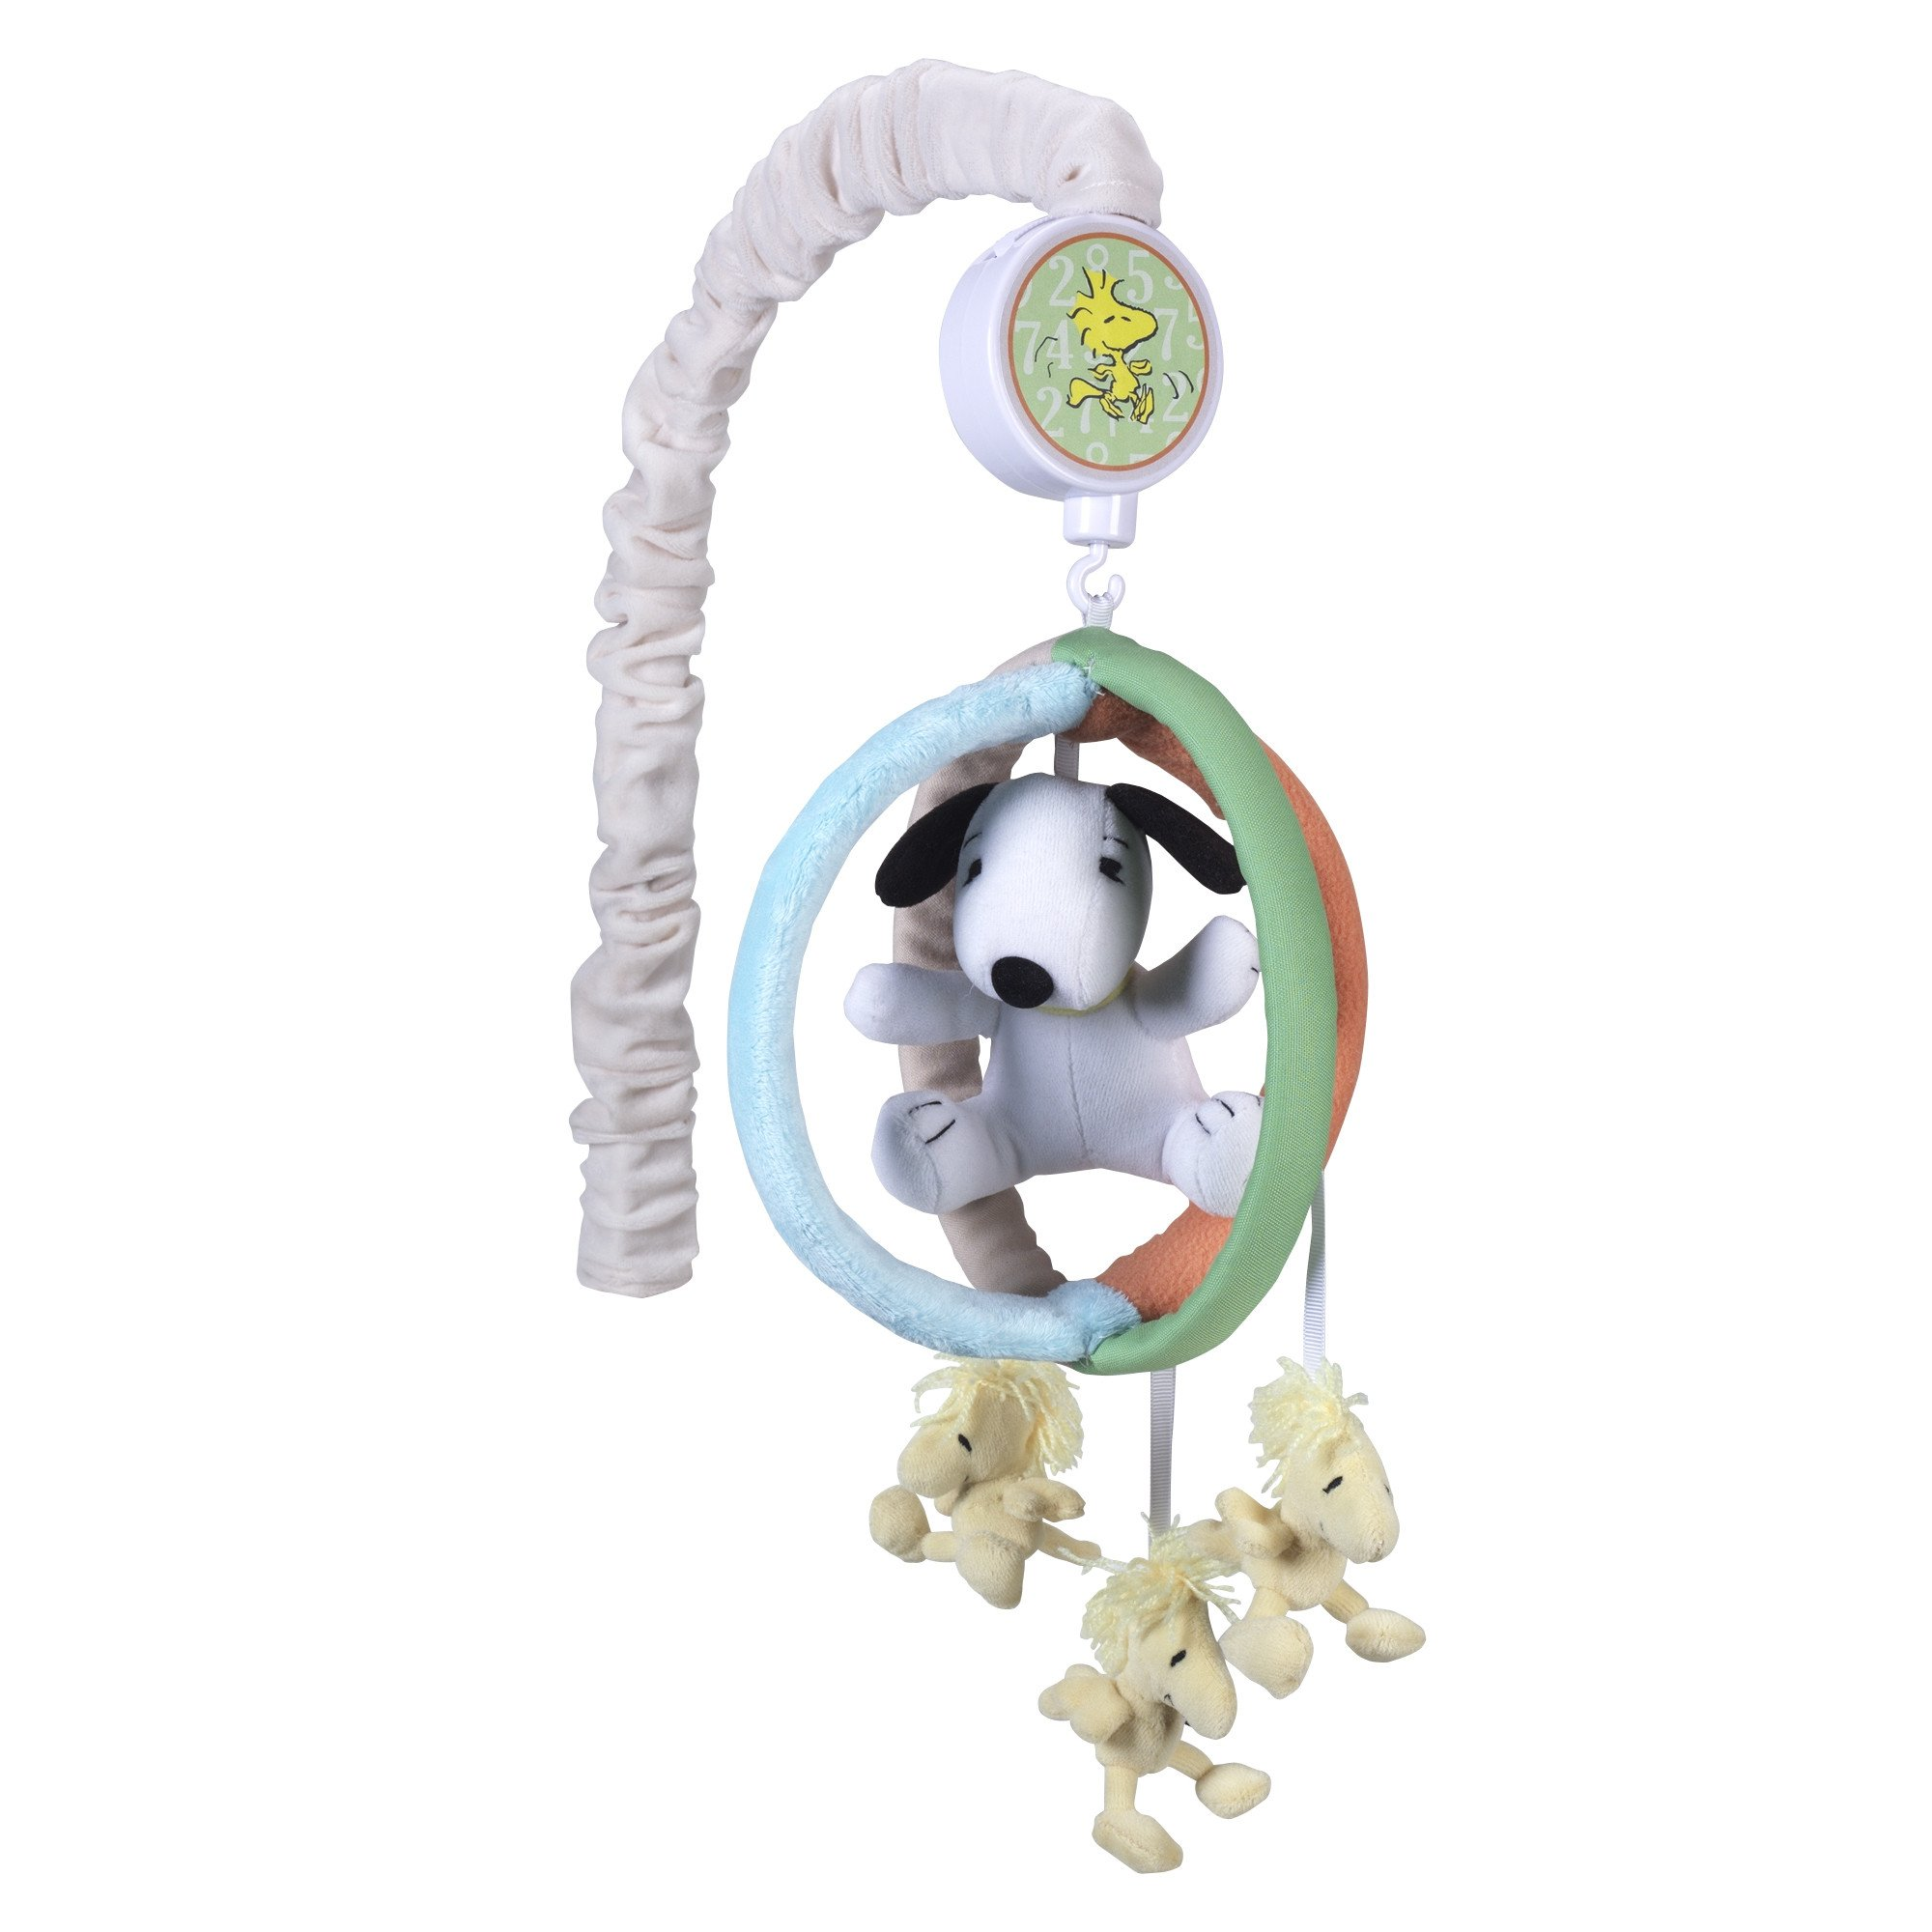 Lambs & Ivy BFF Snoopy Blue Green Orange Musical Baby Crib Mobile by Lambs %26 Ivy